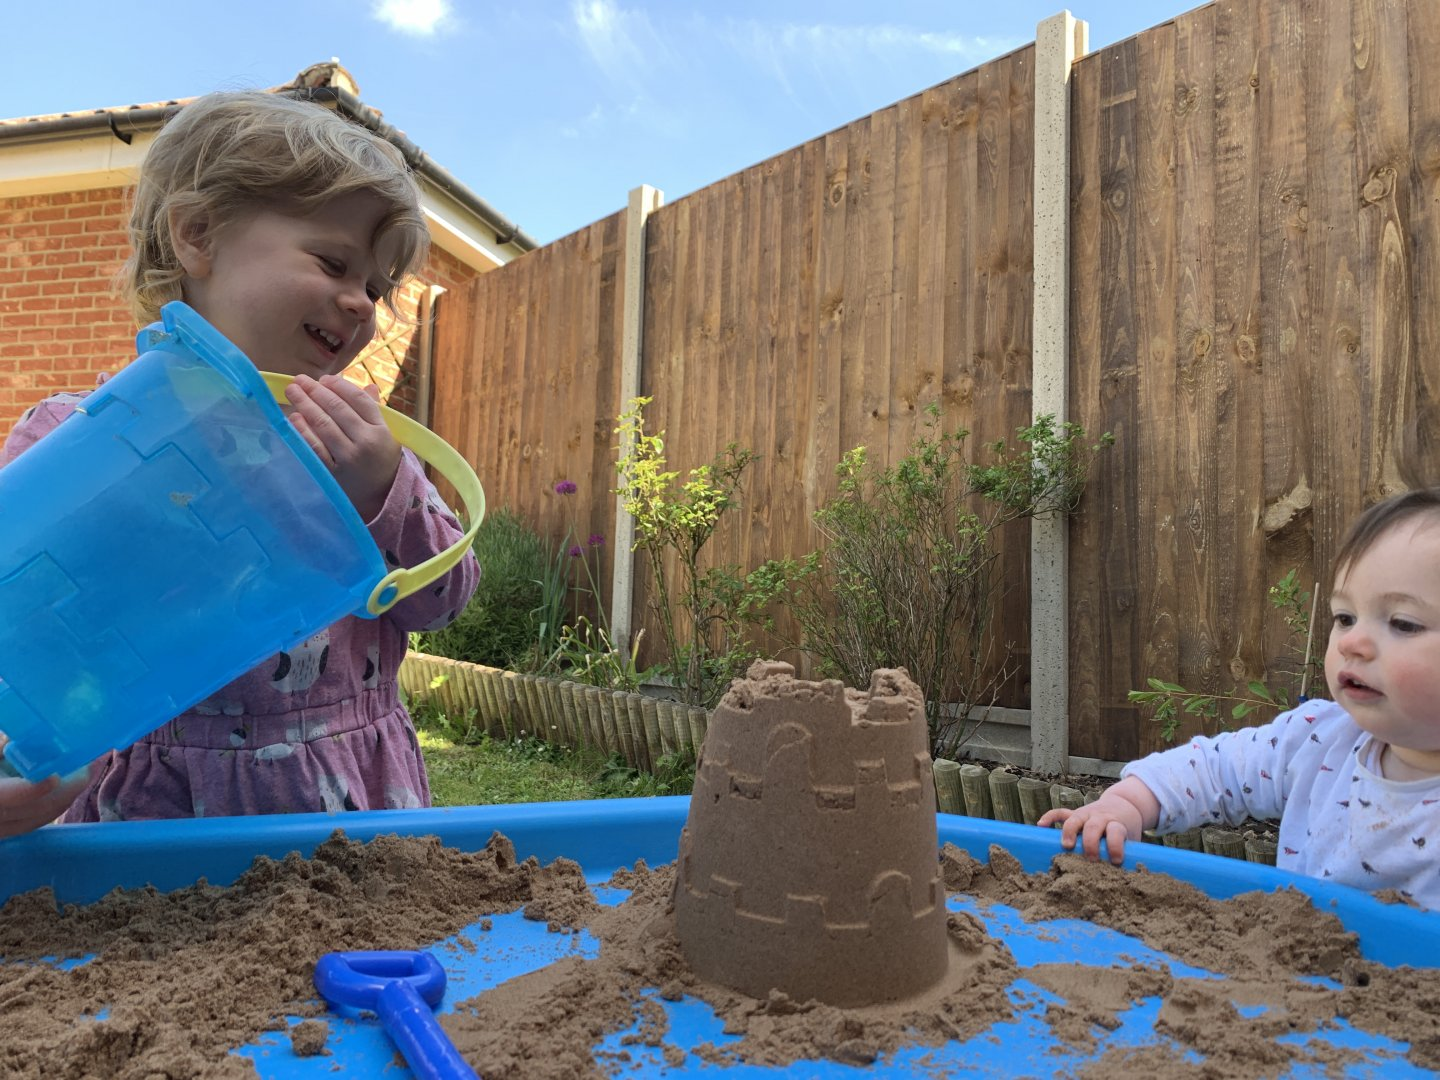 EYFS beach tuff spot activity